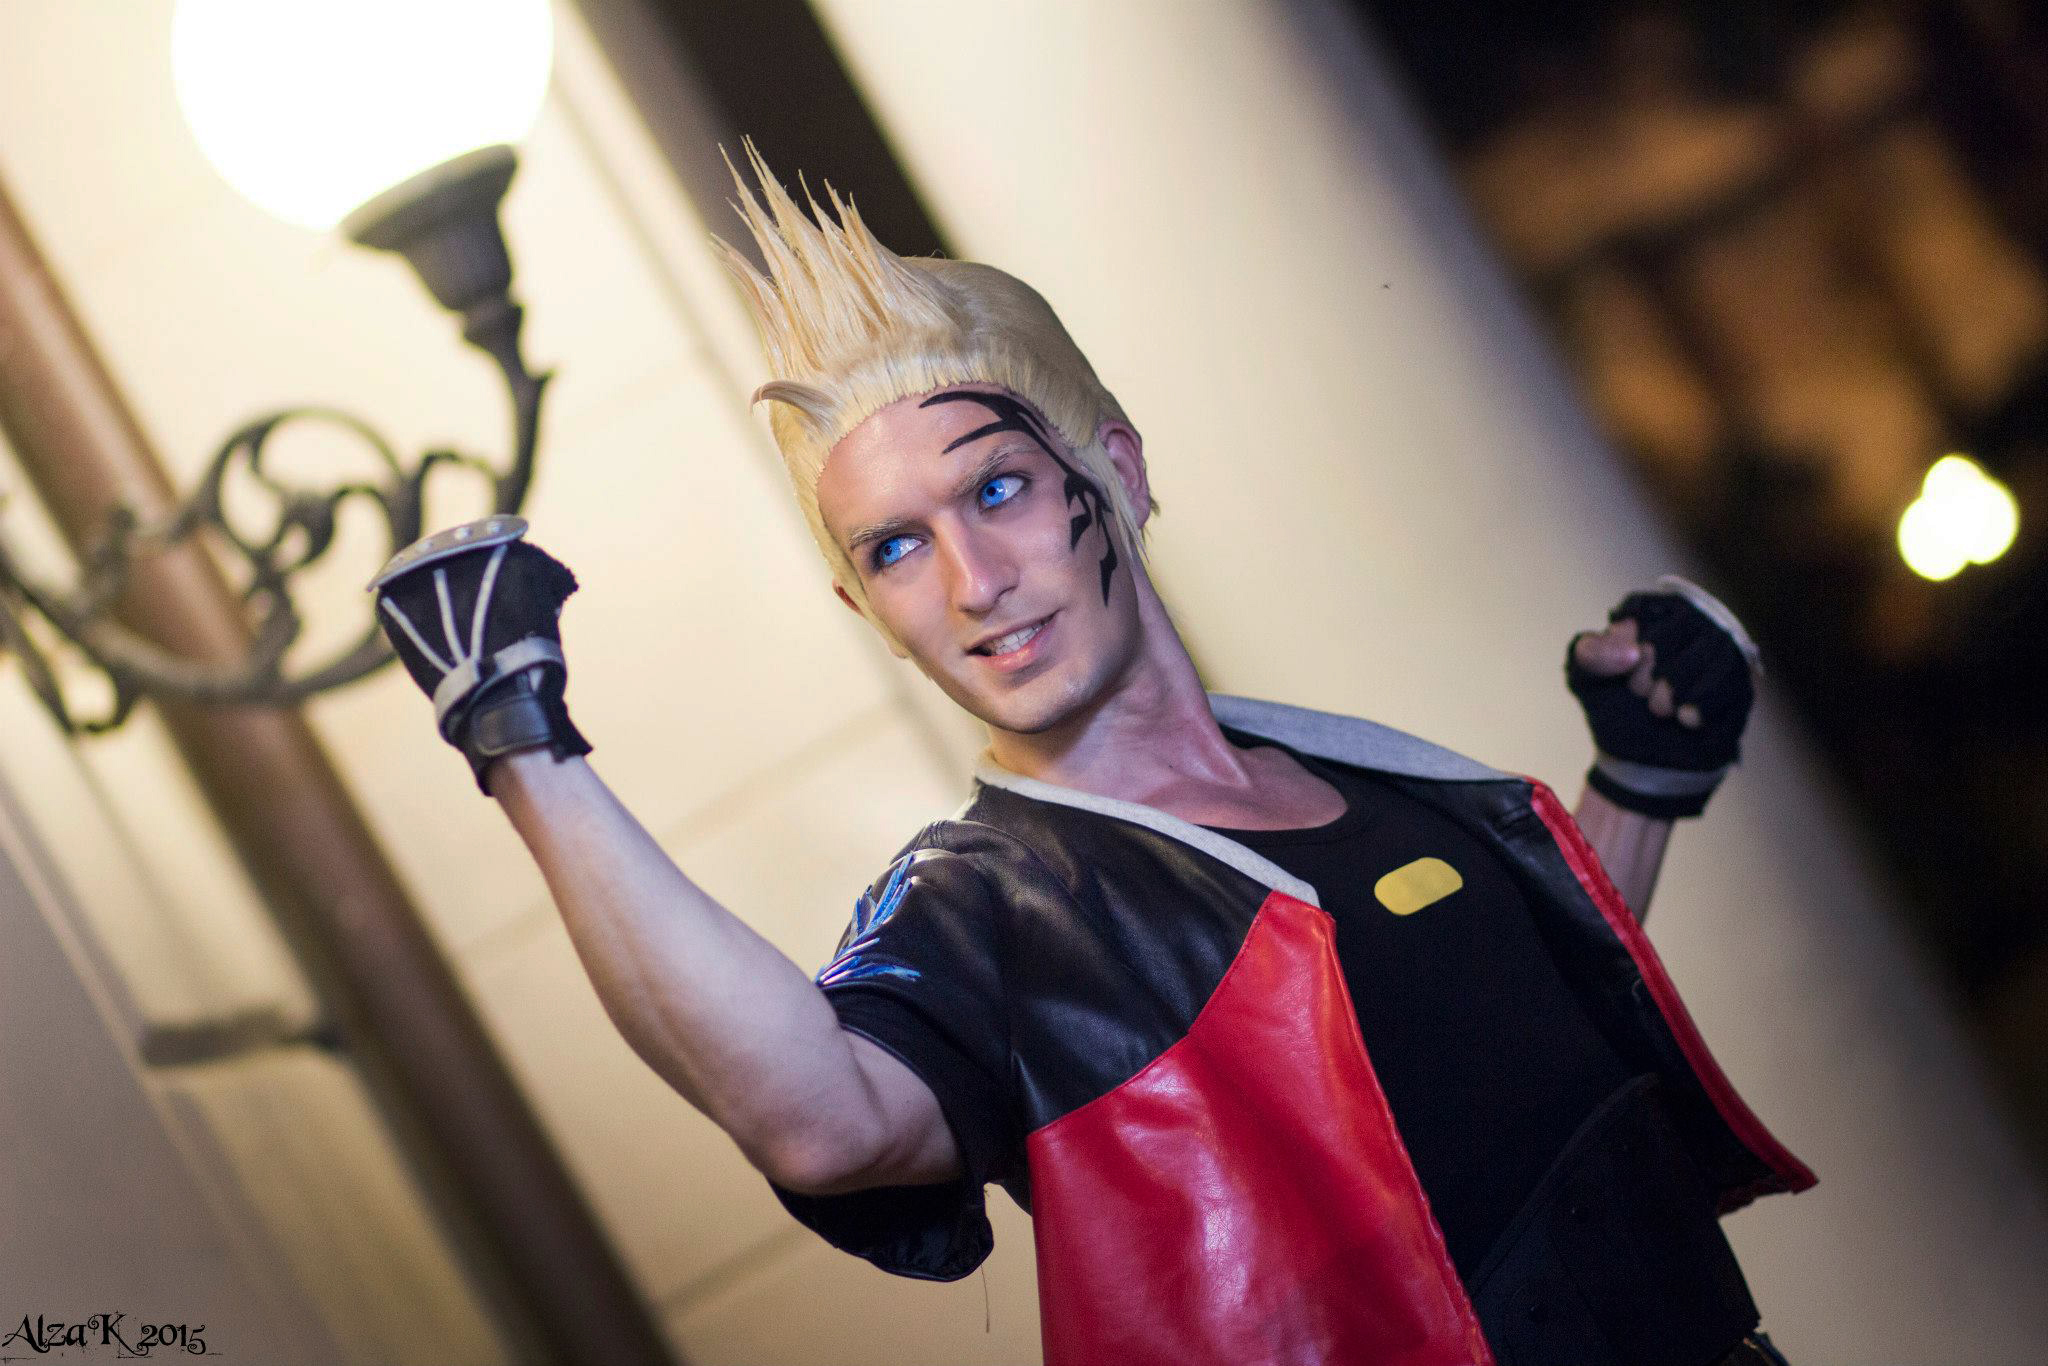 Zell Dincht Final Fantasy VIII Cosplay Leon Chiro By